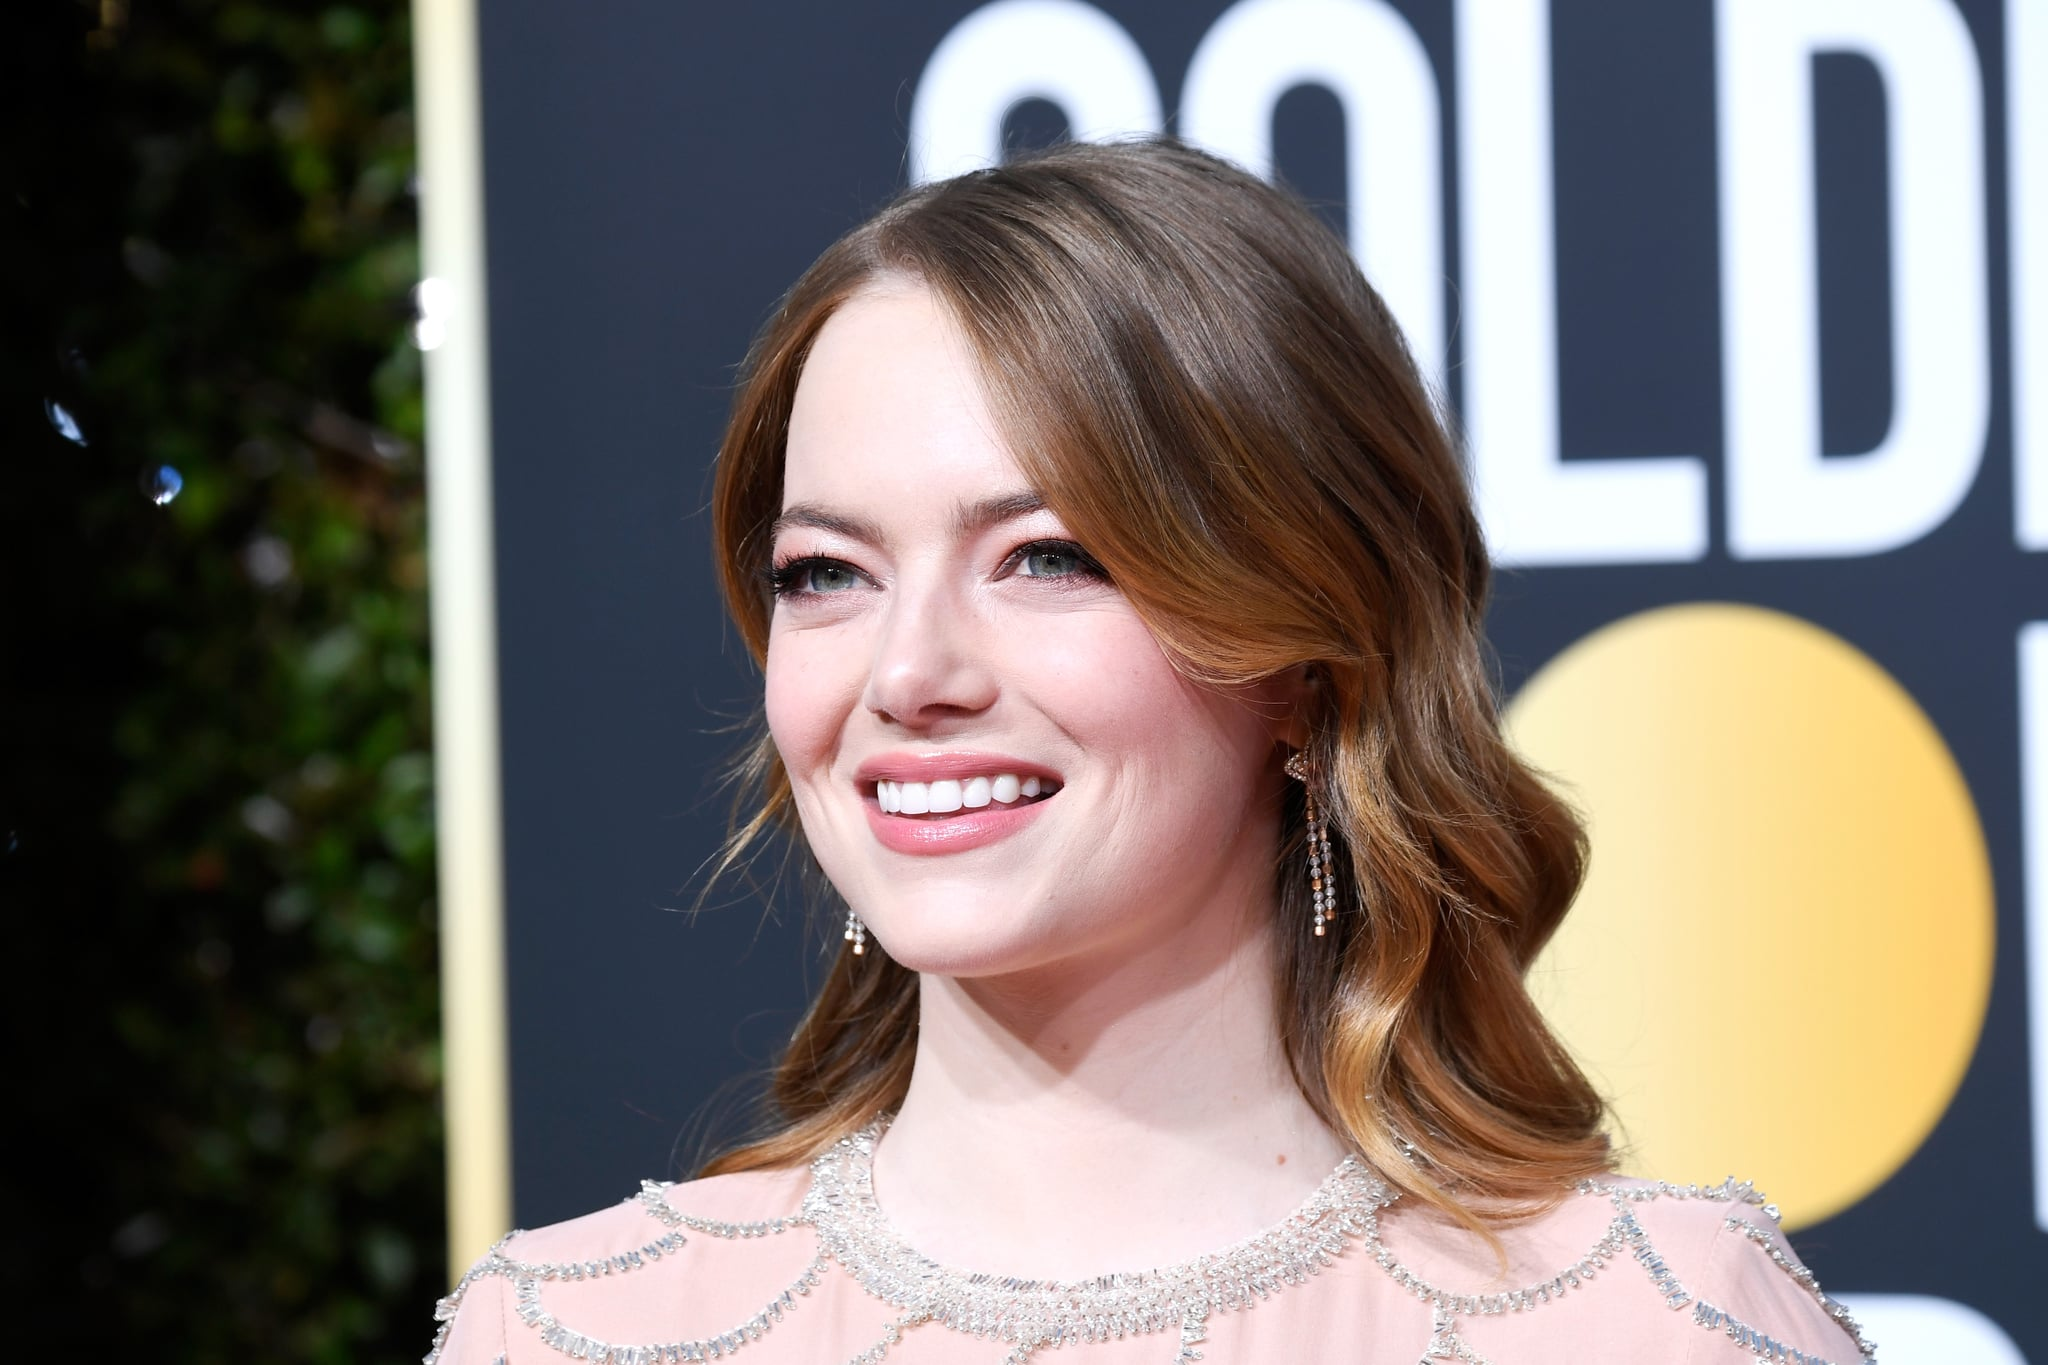 BEVERLY HILLS, CA - JANUARY 06:  Emma Stone attends the 76th Annual Golden Globe Awards at The Beverly Hilton Hotel on January 6, 2019 in Beverly Hills, California.  (Photo by Frazer Harrison/Getty Images)